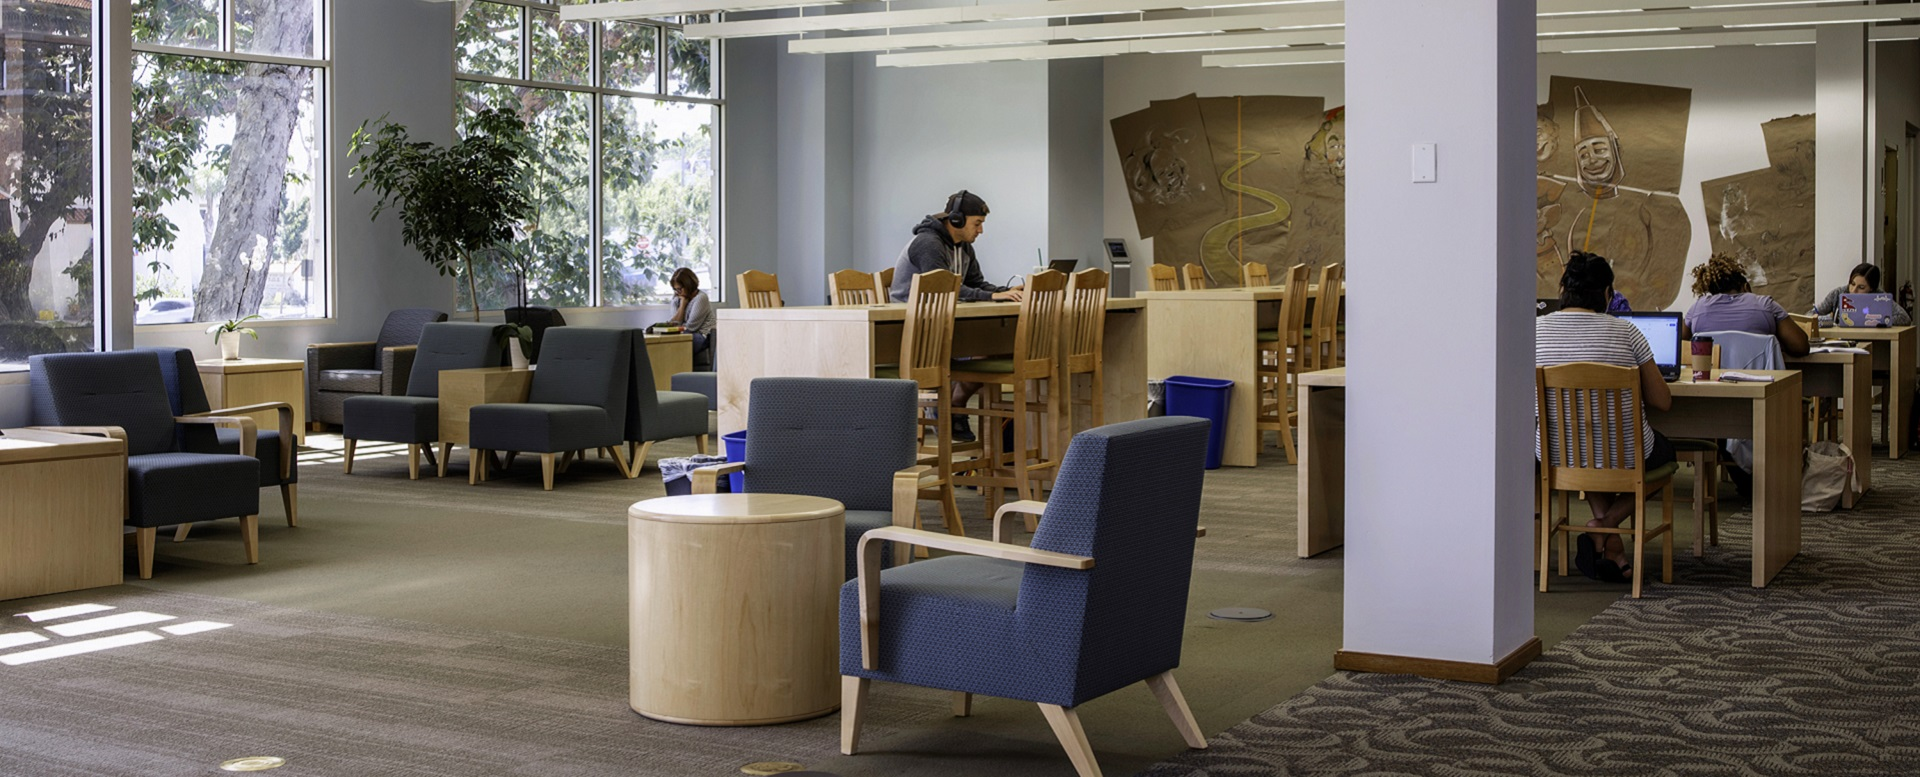 Image of reading lounge space inside the library